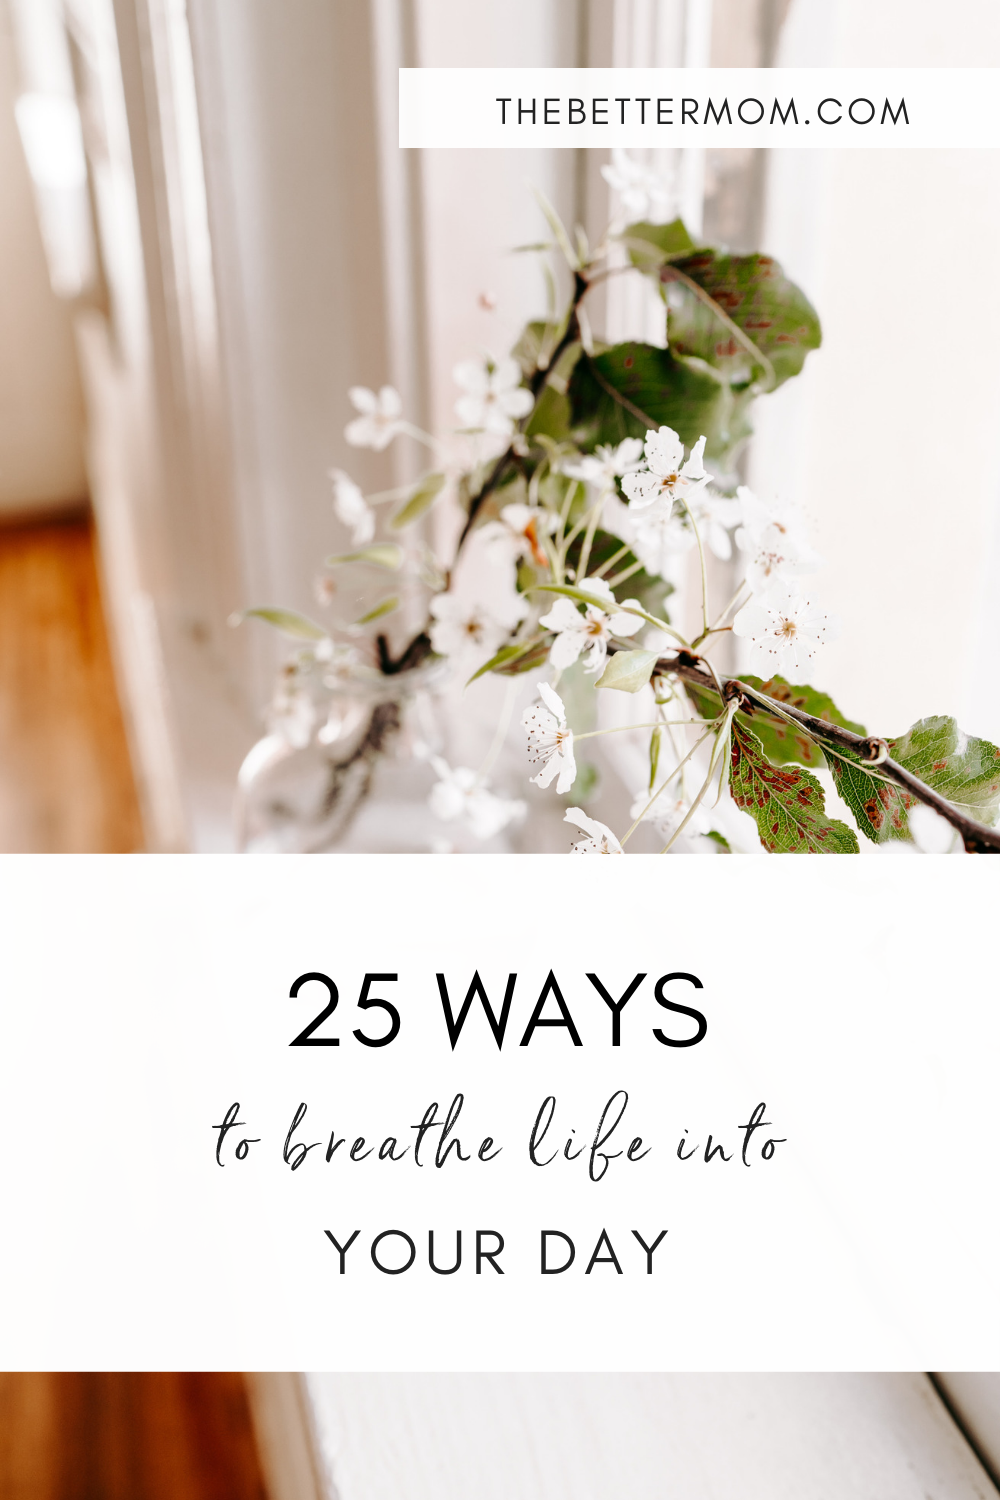 Do you feel exhausted and drained? Refreshment for your soul might feel impossible, but we know how important it is to be filled up as a mama! Today, we're sharing 25 practical ways to lighten your load and incorporate beauty right where you are!